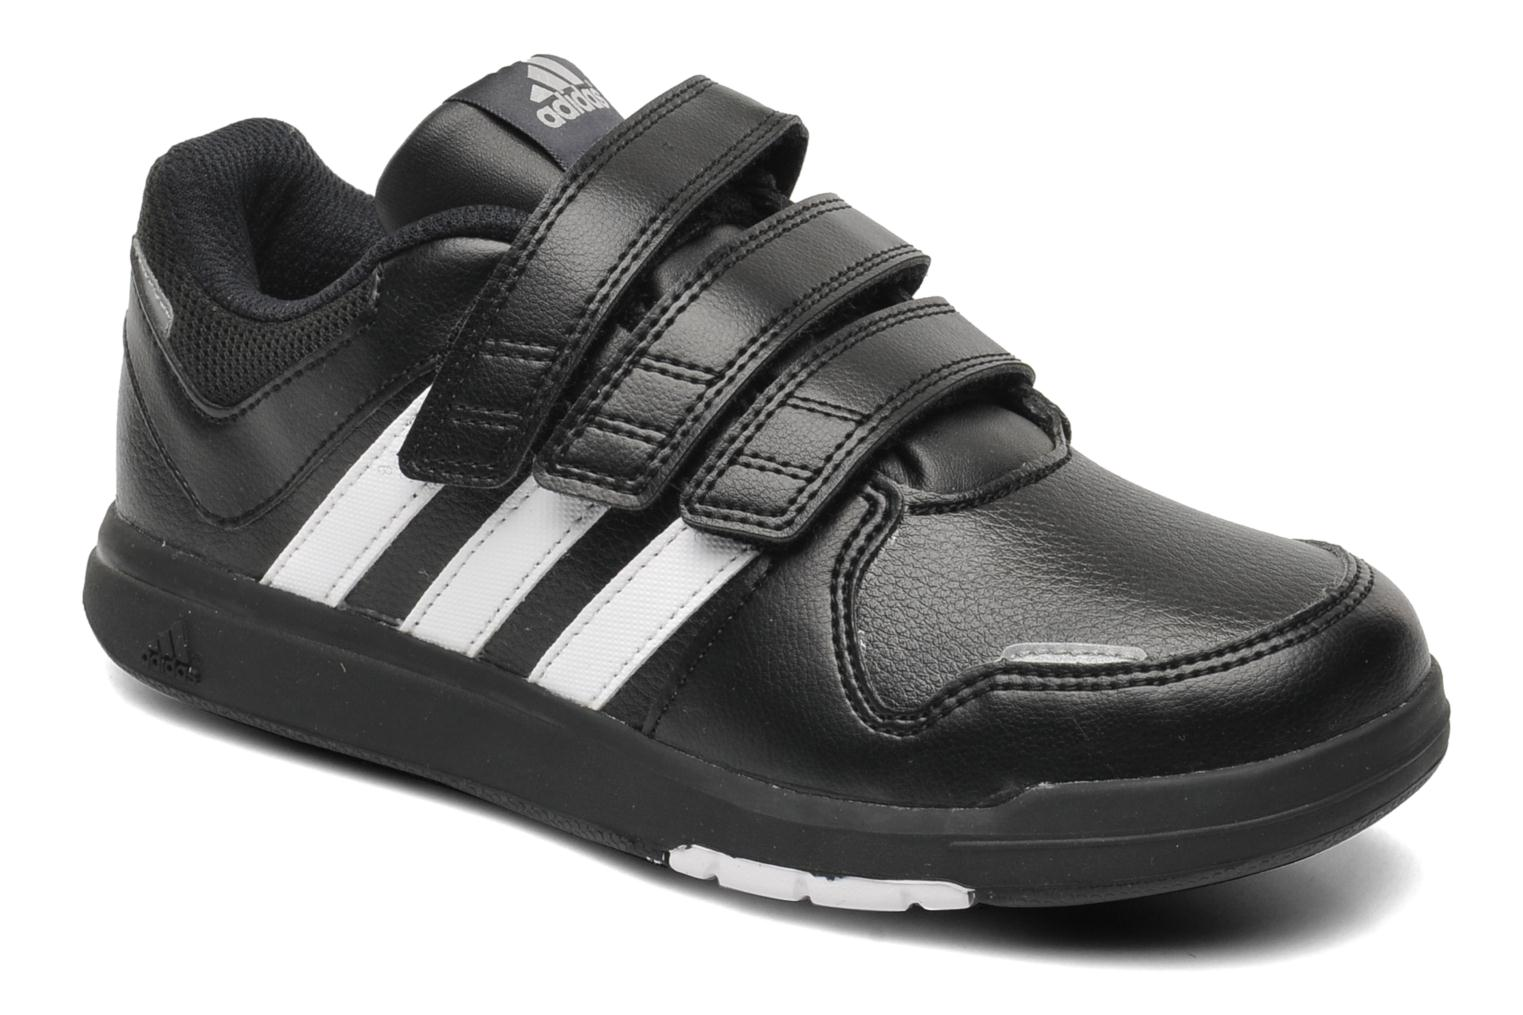 Baskets Adidas Performance LK Trainer 6 CF K Noir vue détail/paire